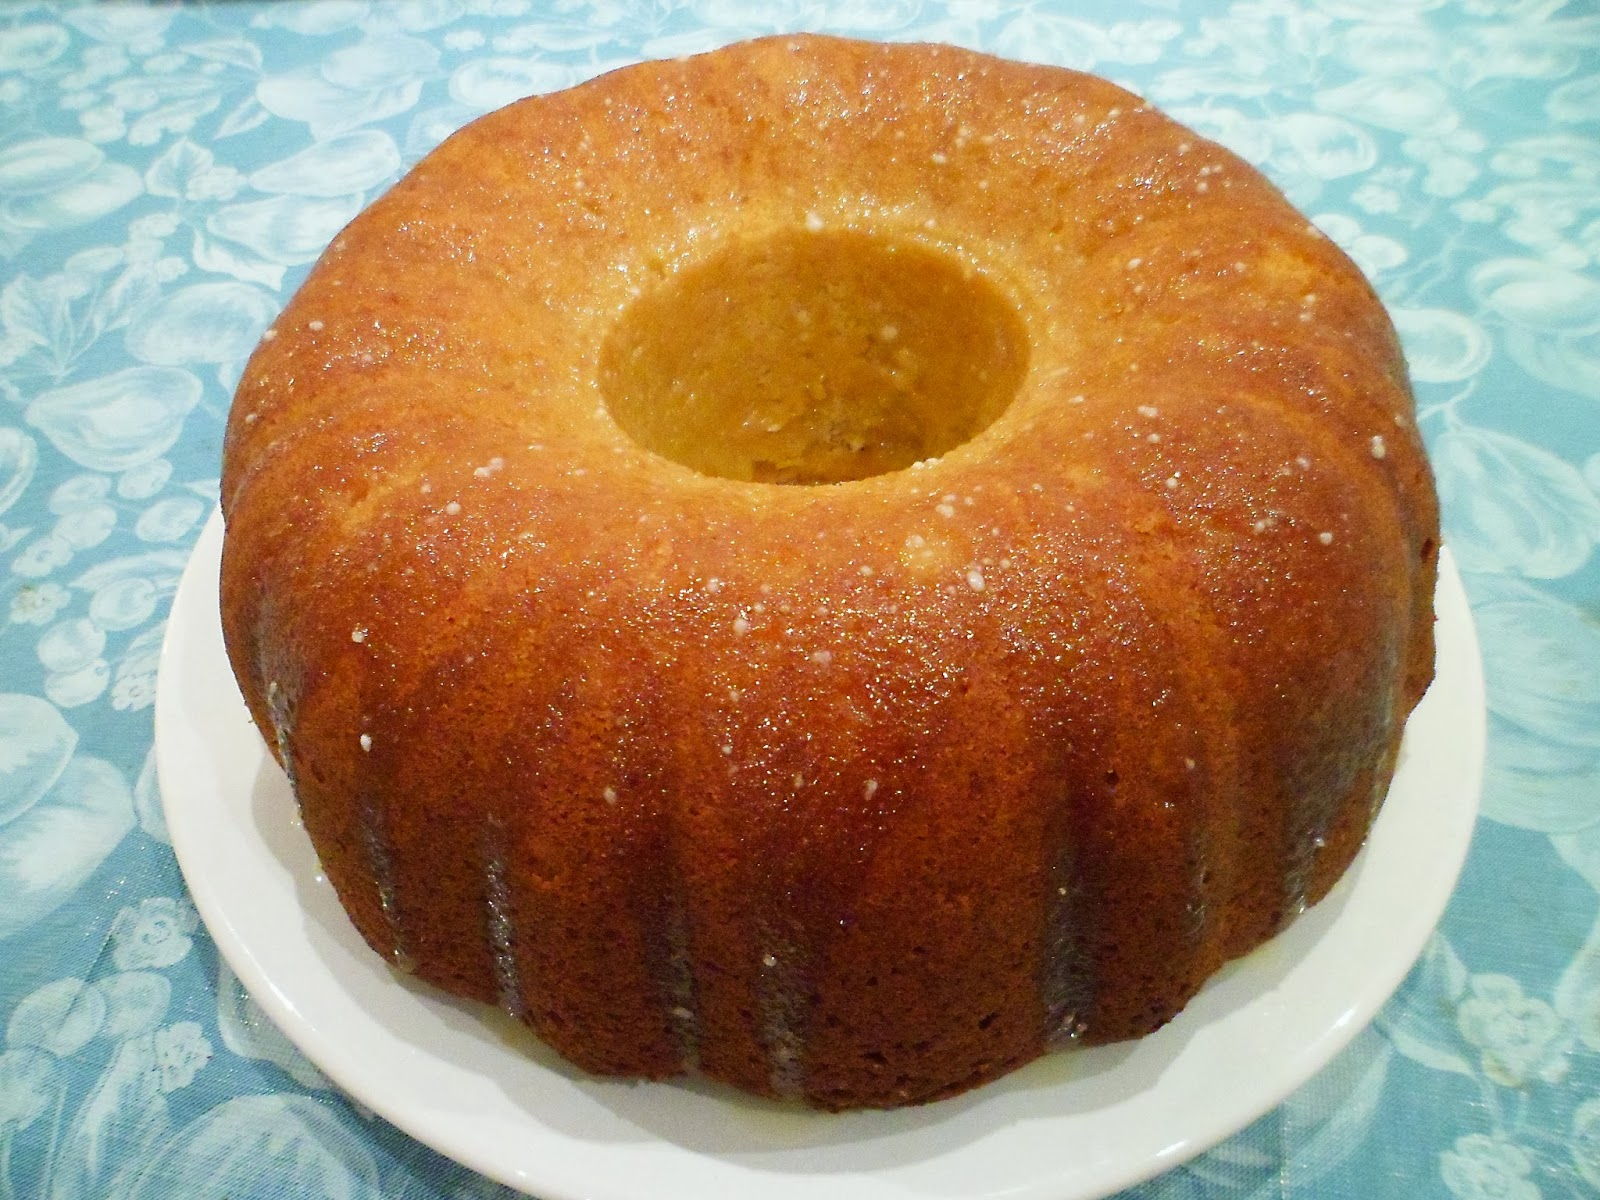 Recipe For Orange Cake Using Whole Oranges